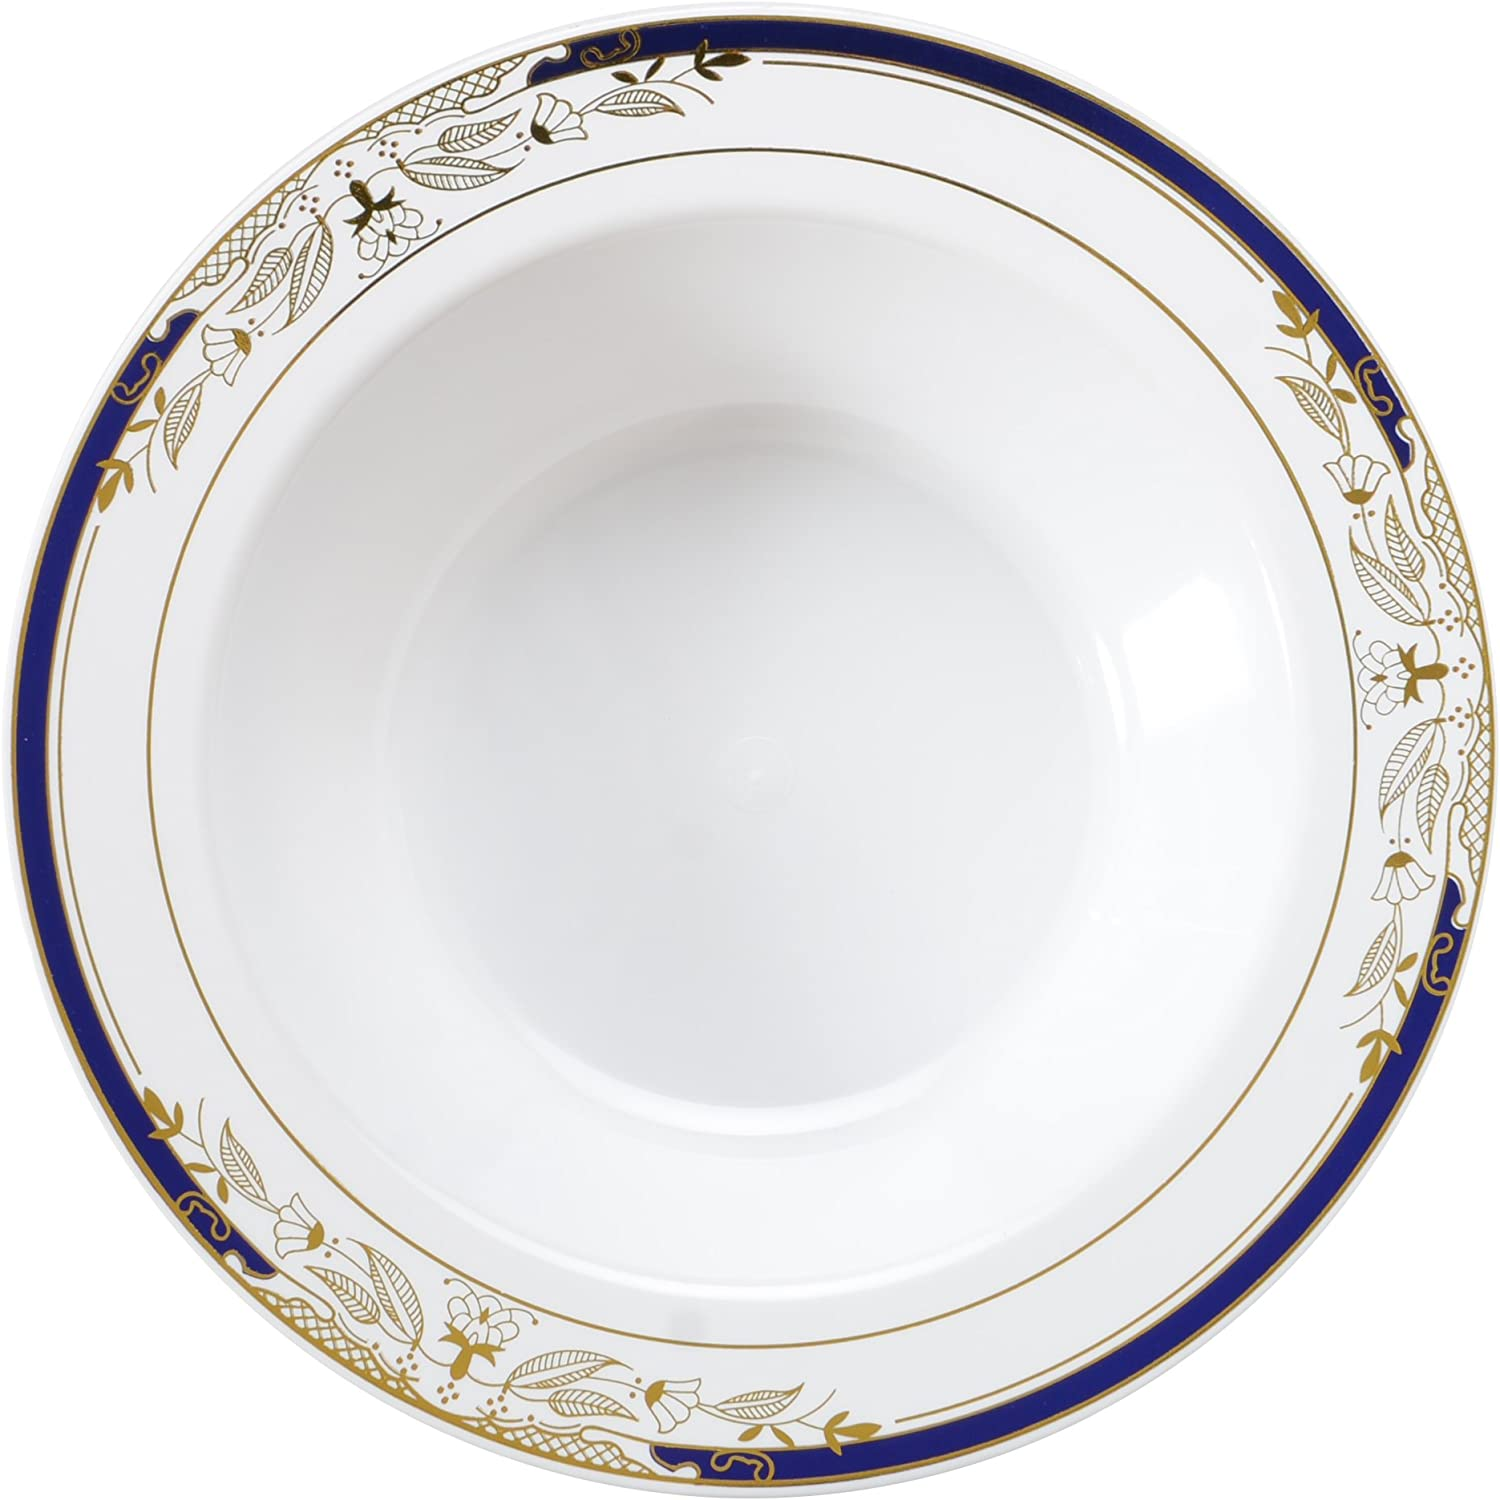 Signature blue 120 Piece Soup Salad Bowl with Cobalt Trim & gold Stamping, 12 oz, White